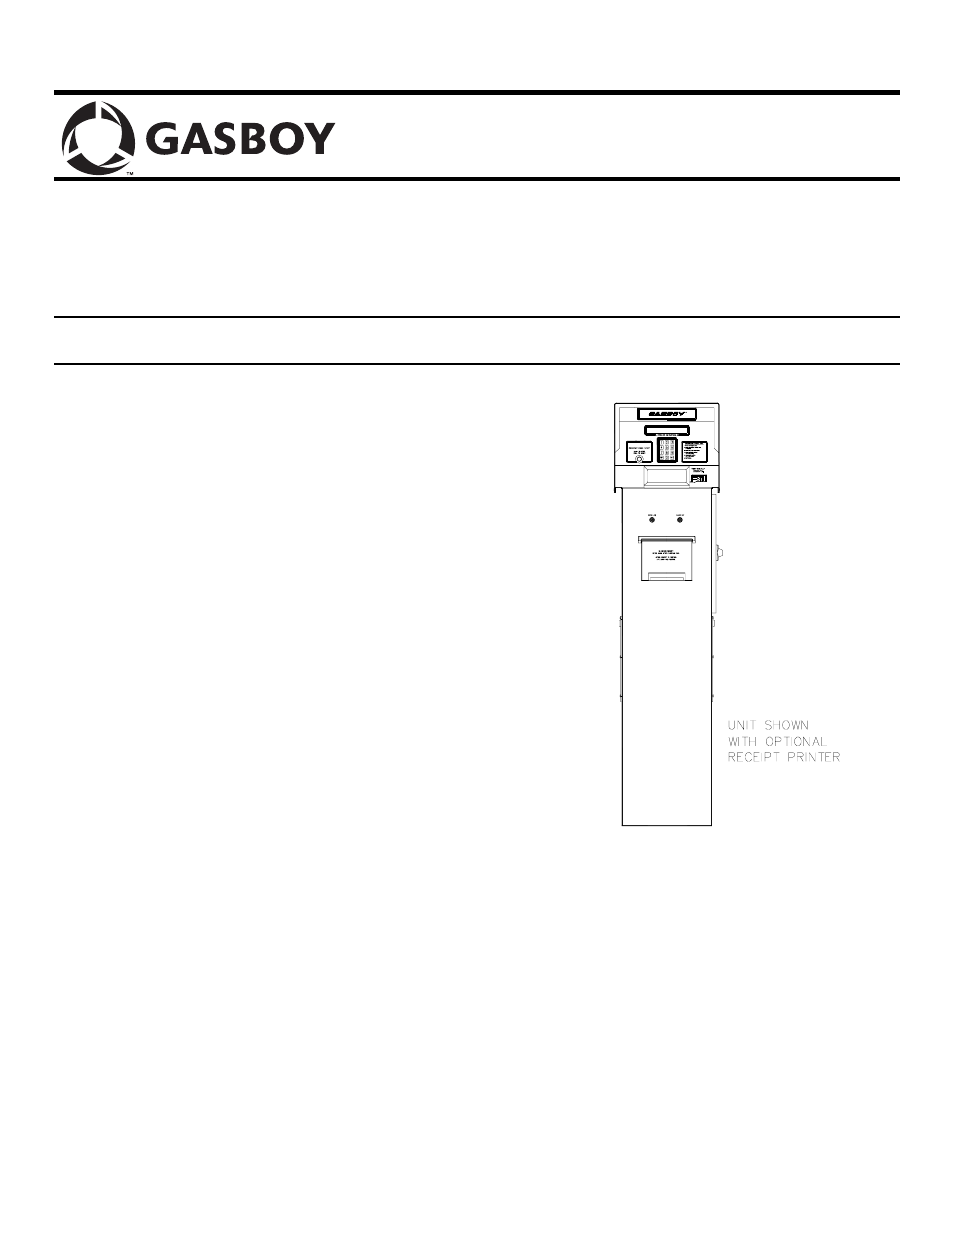 Gasboy 1000 Series Installation User Manual | 8 pages on